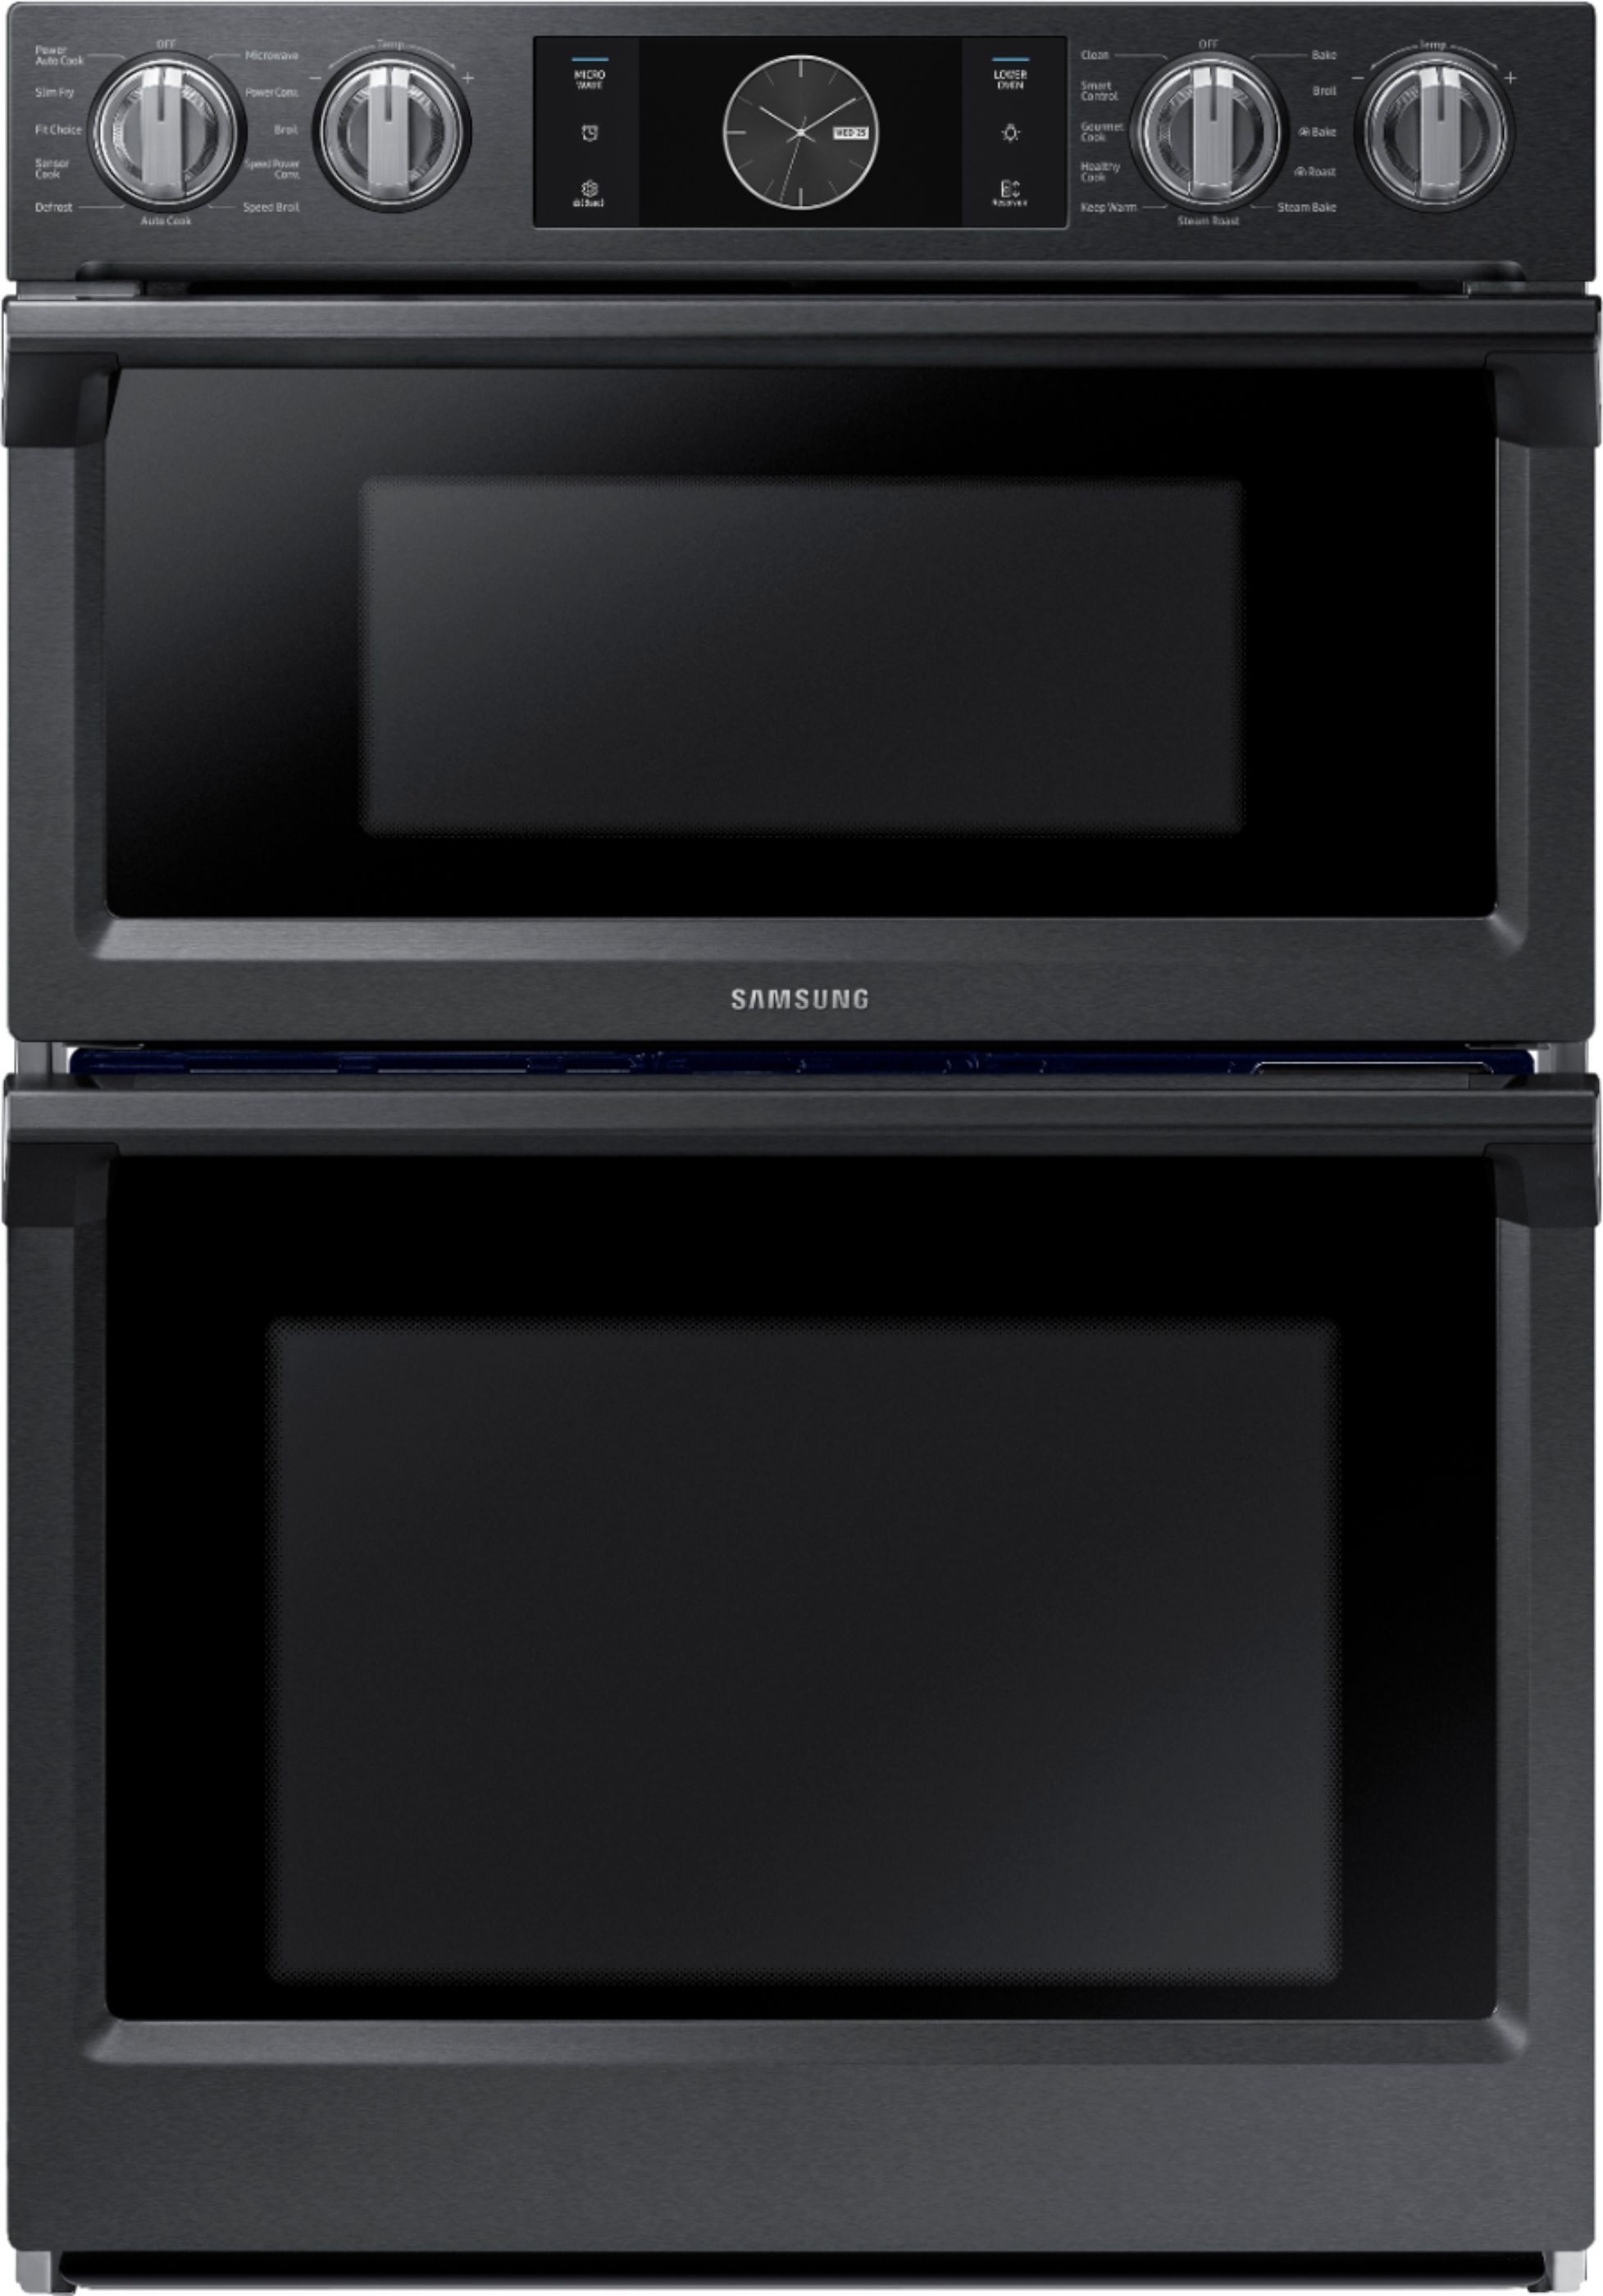 samsung 30 microwave combination wall oven with flex duo steam cook and wifi fingerprint resistant black stainless steel